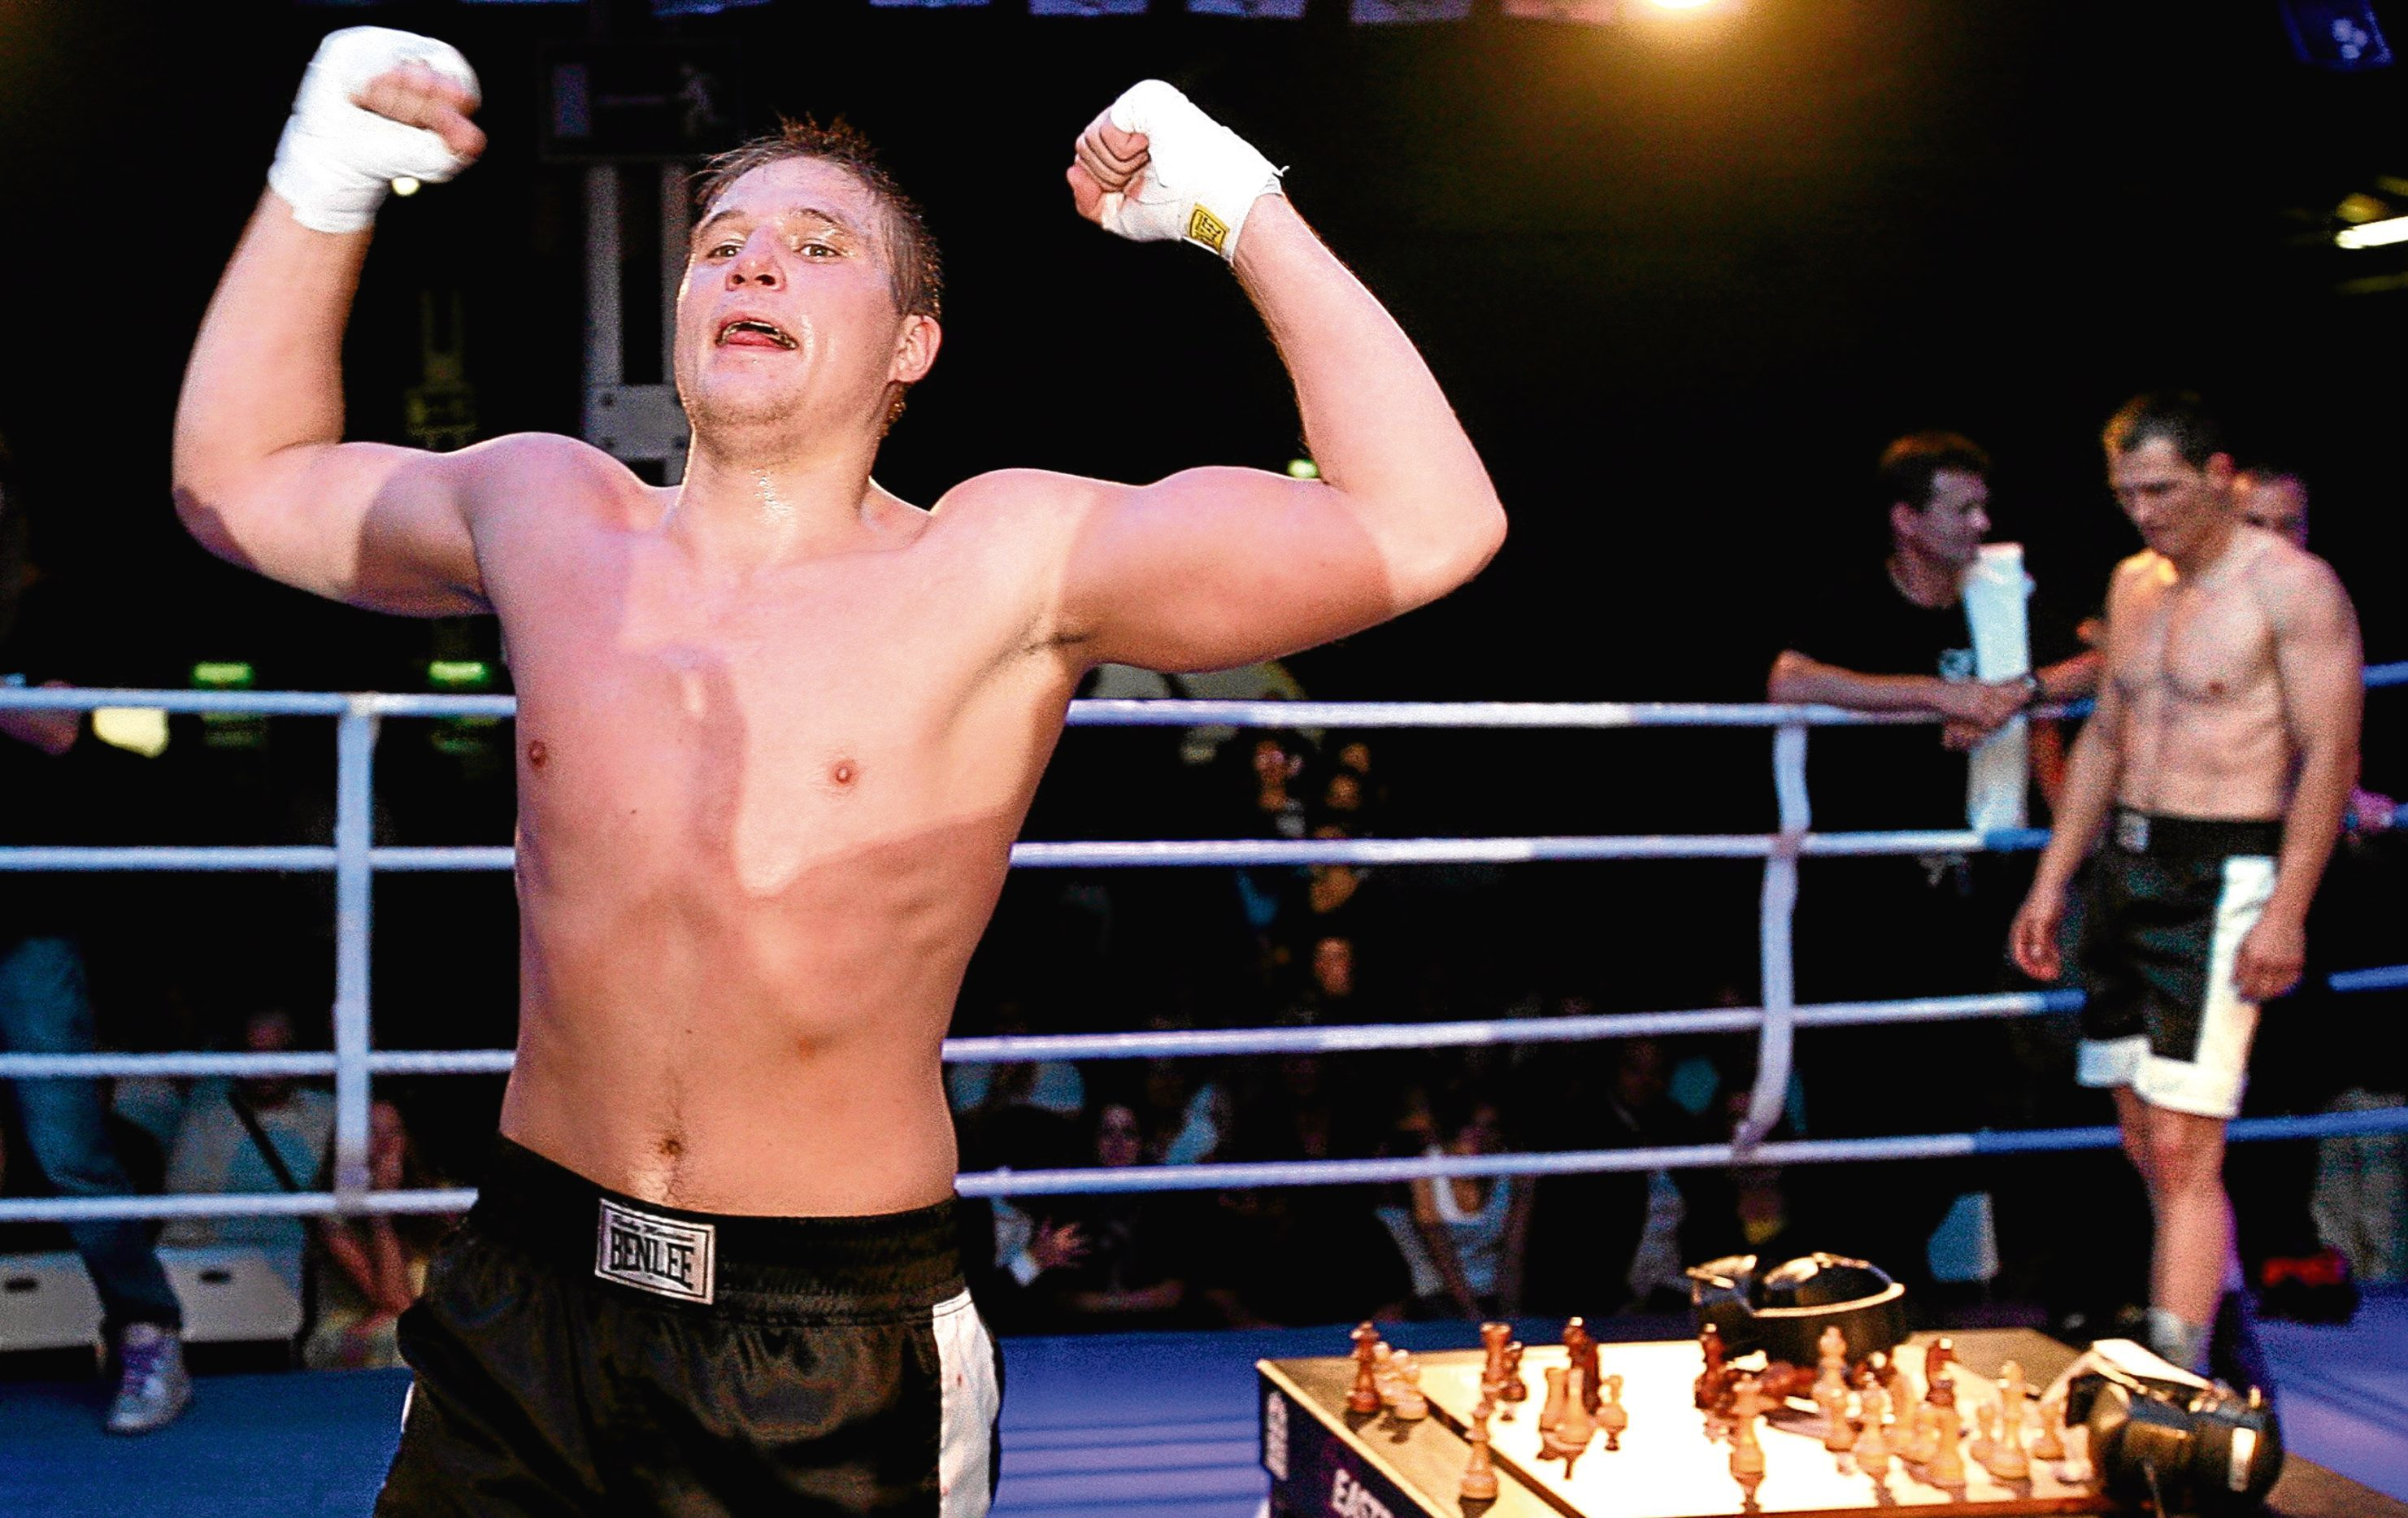 Russian Nikolay Sazhin (L) celebrates his win over German Frank Stoldt (R) after claiming the light heavyweight world championship title in chess boxing (EPA/WOLFGANG KUMM)